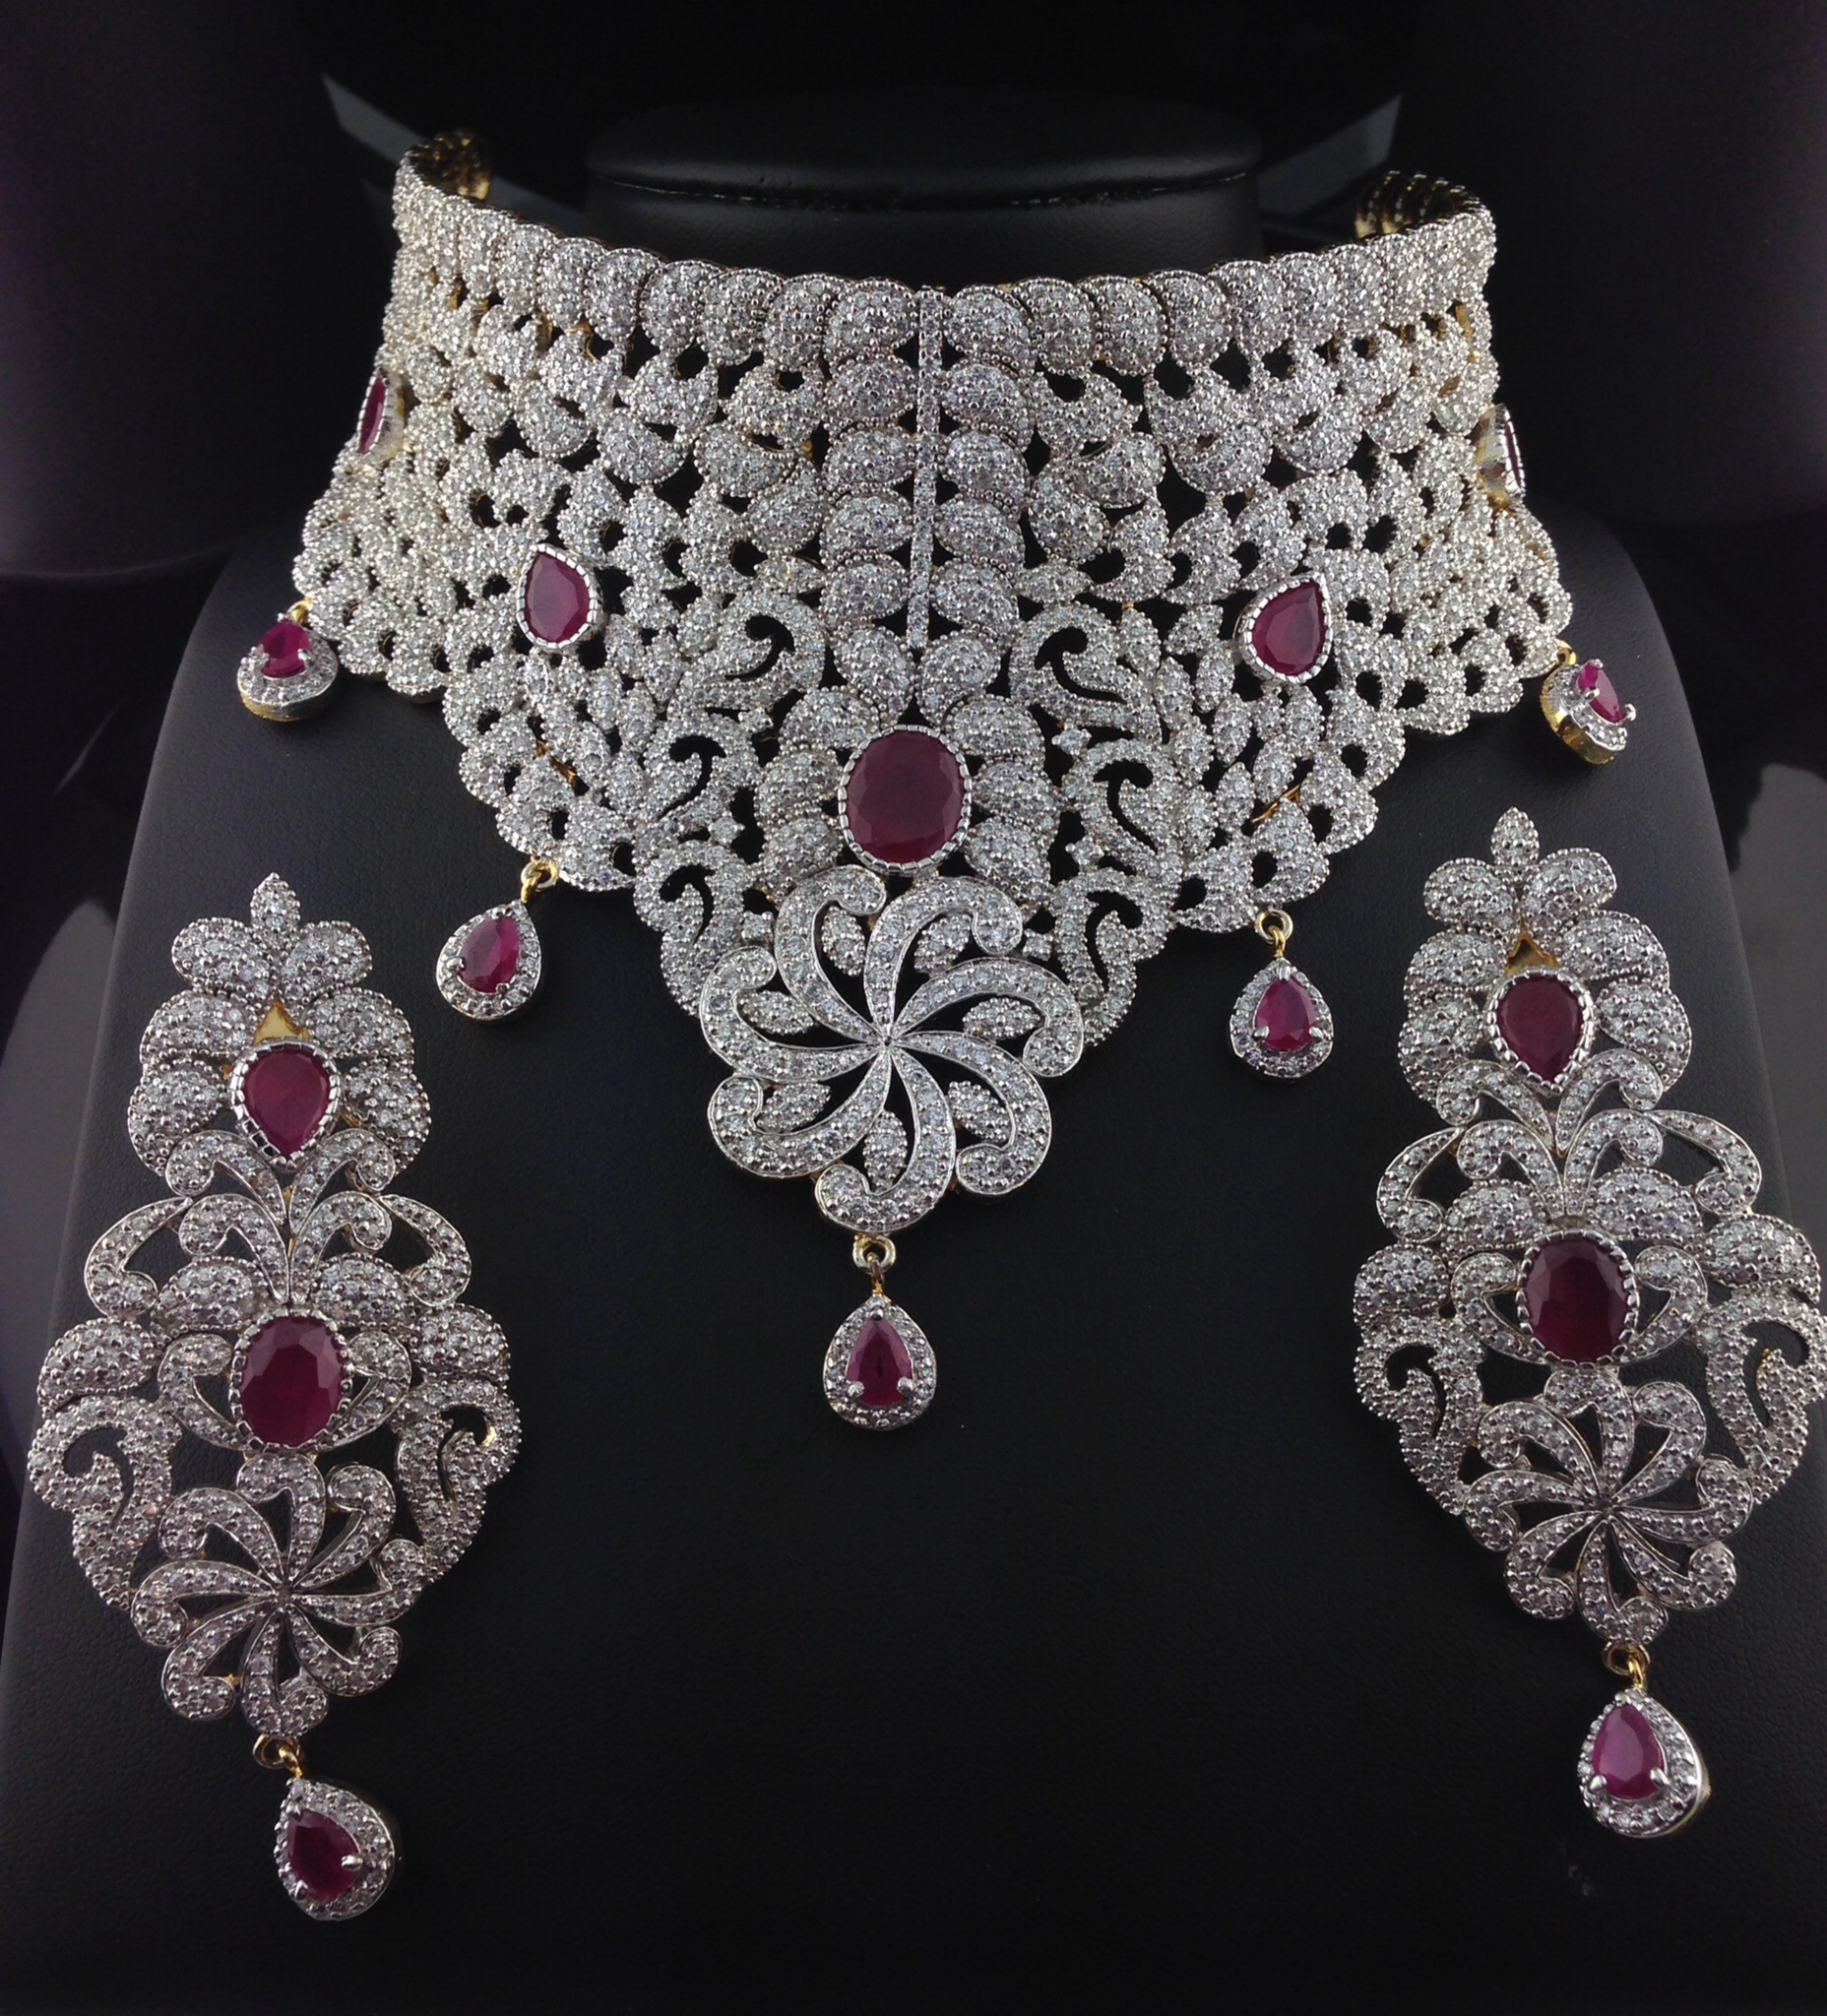 Stunning American Diamond Bridal Set With Rubies Indian